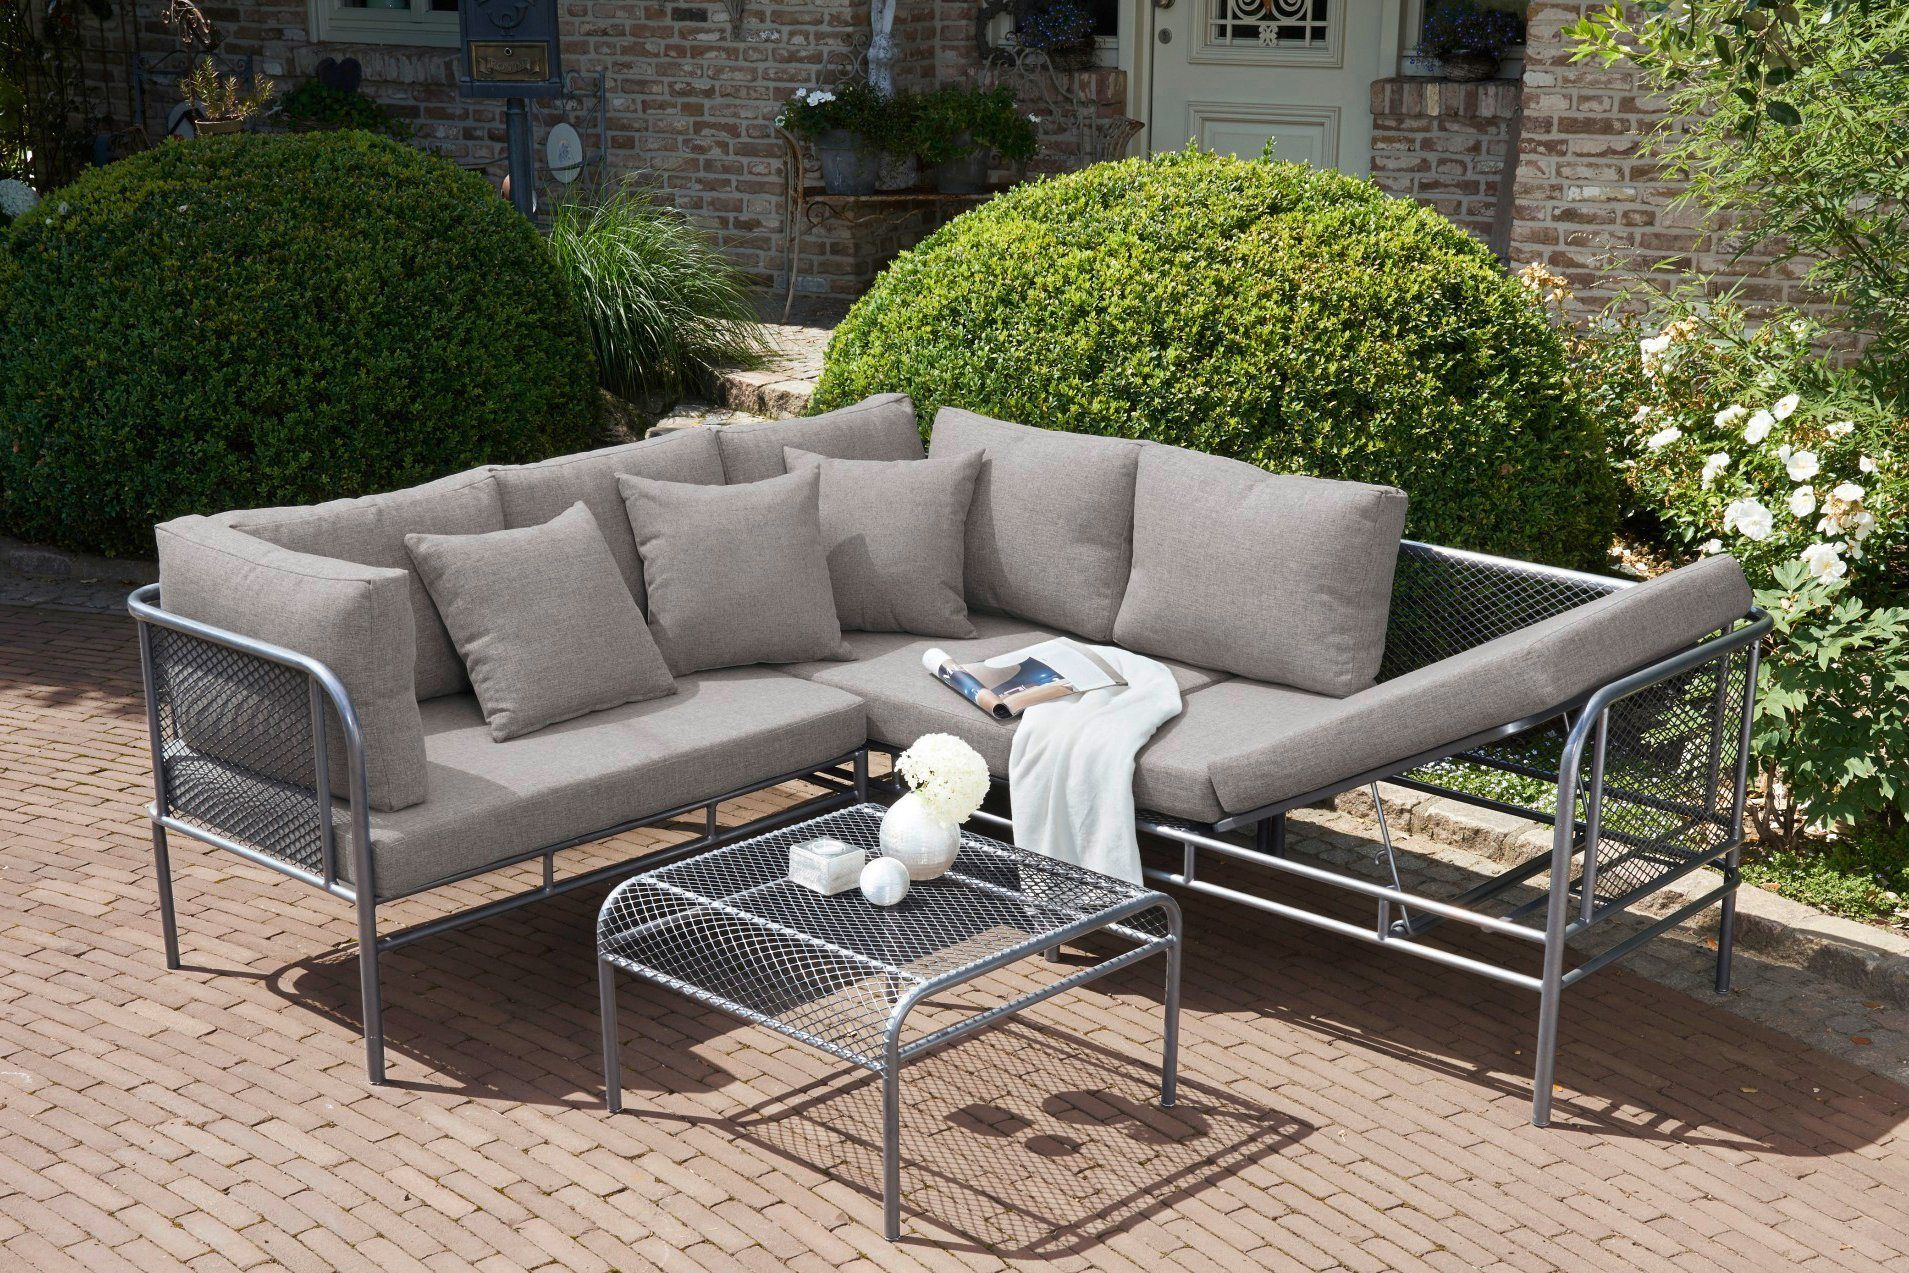 Greemotion Loungeset Toulouse 3 Tlg Ecklounge Tisch 65x65 Cm